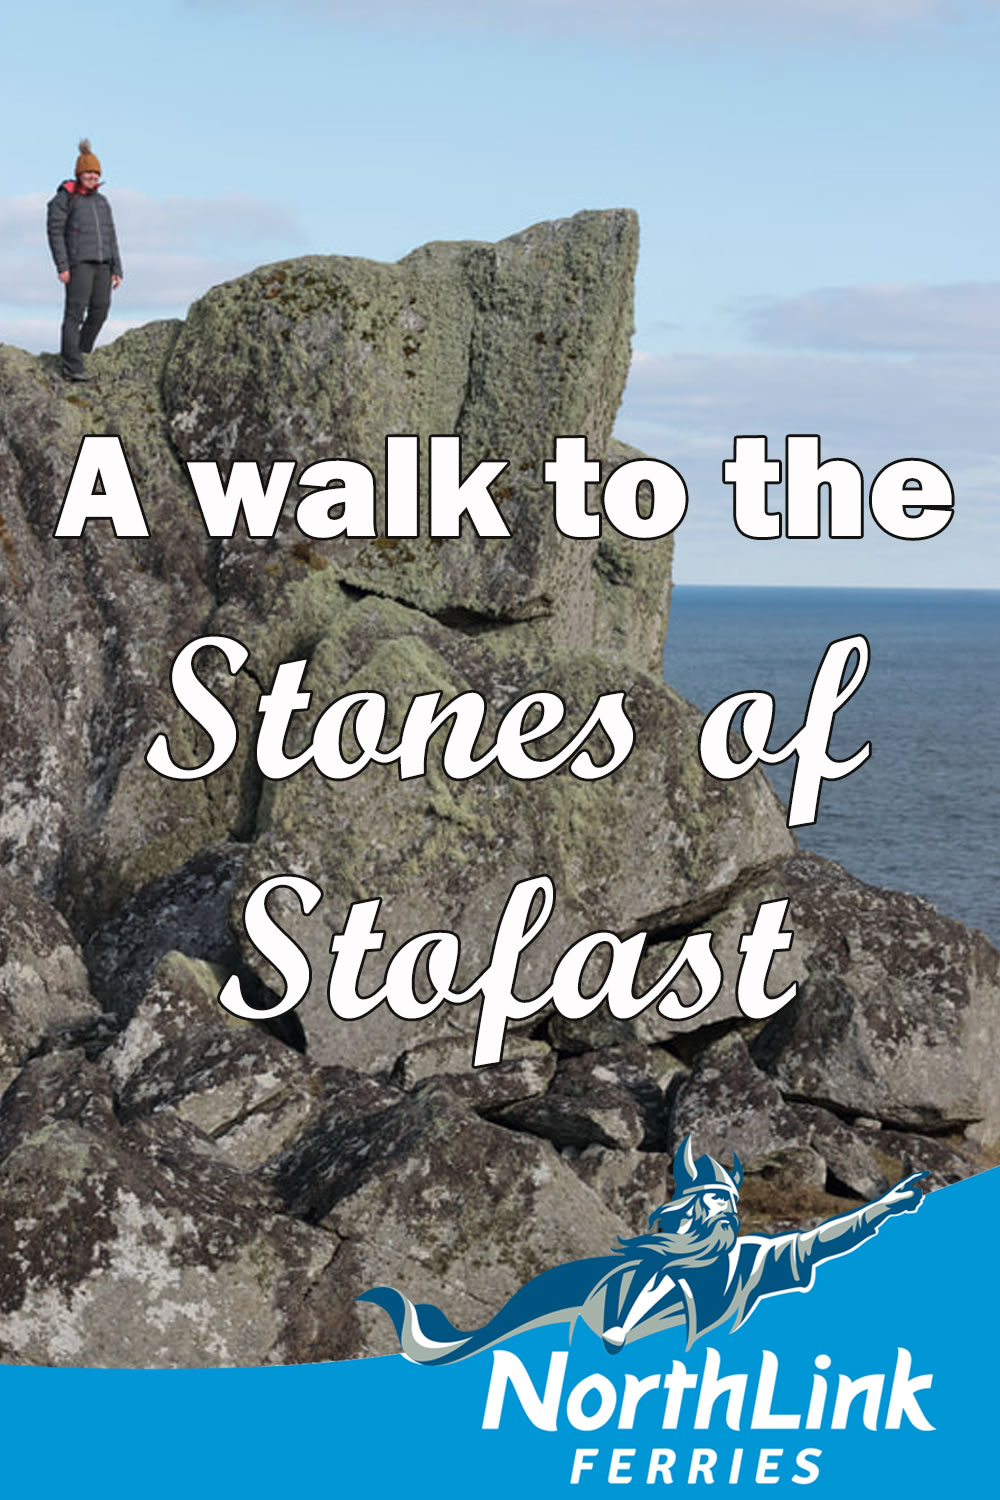 A walk to the Stones of Stofast